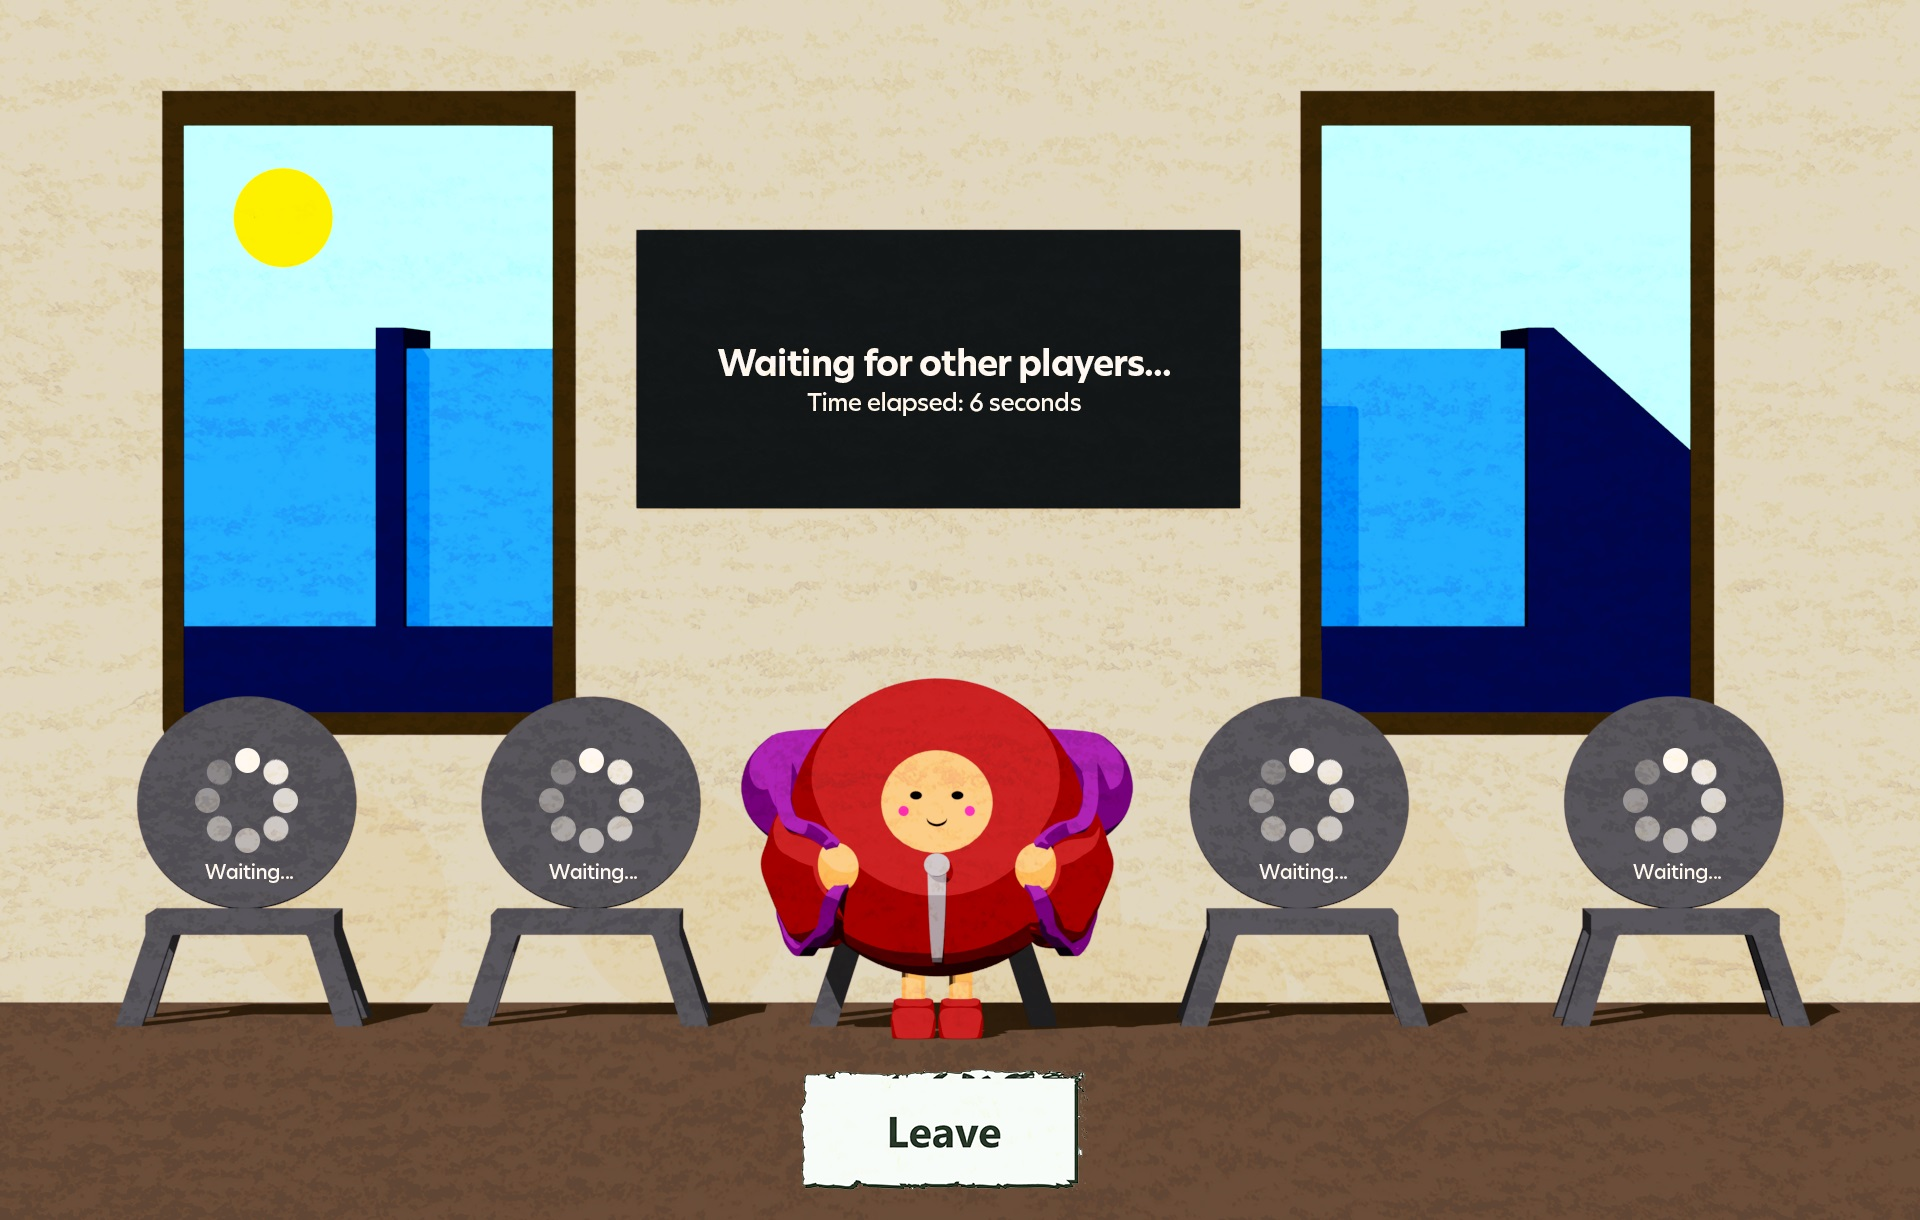 A scene from the Trails: Companion World game. The player character waits in front of a row of chairs that say waiting on them. A board above the character says waiting for other players - time elapsed 6 seconds. A button underneath the player character says leave. Outside the window, it is sunny and a train has pulled up.